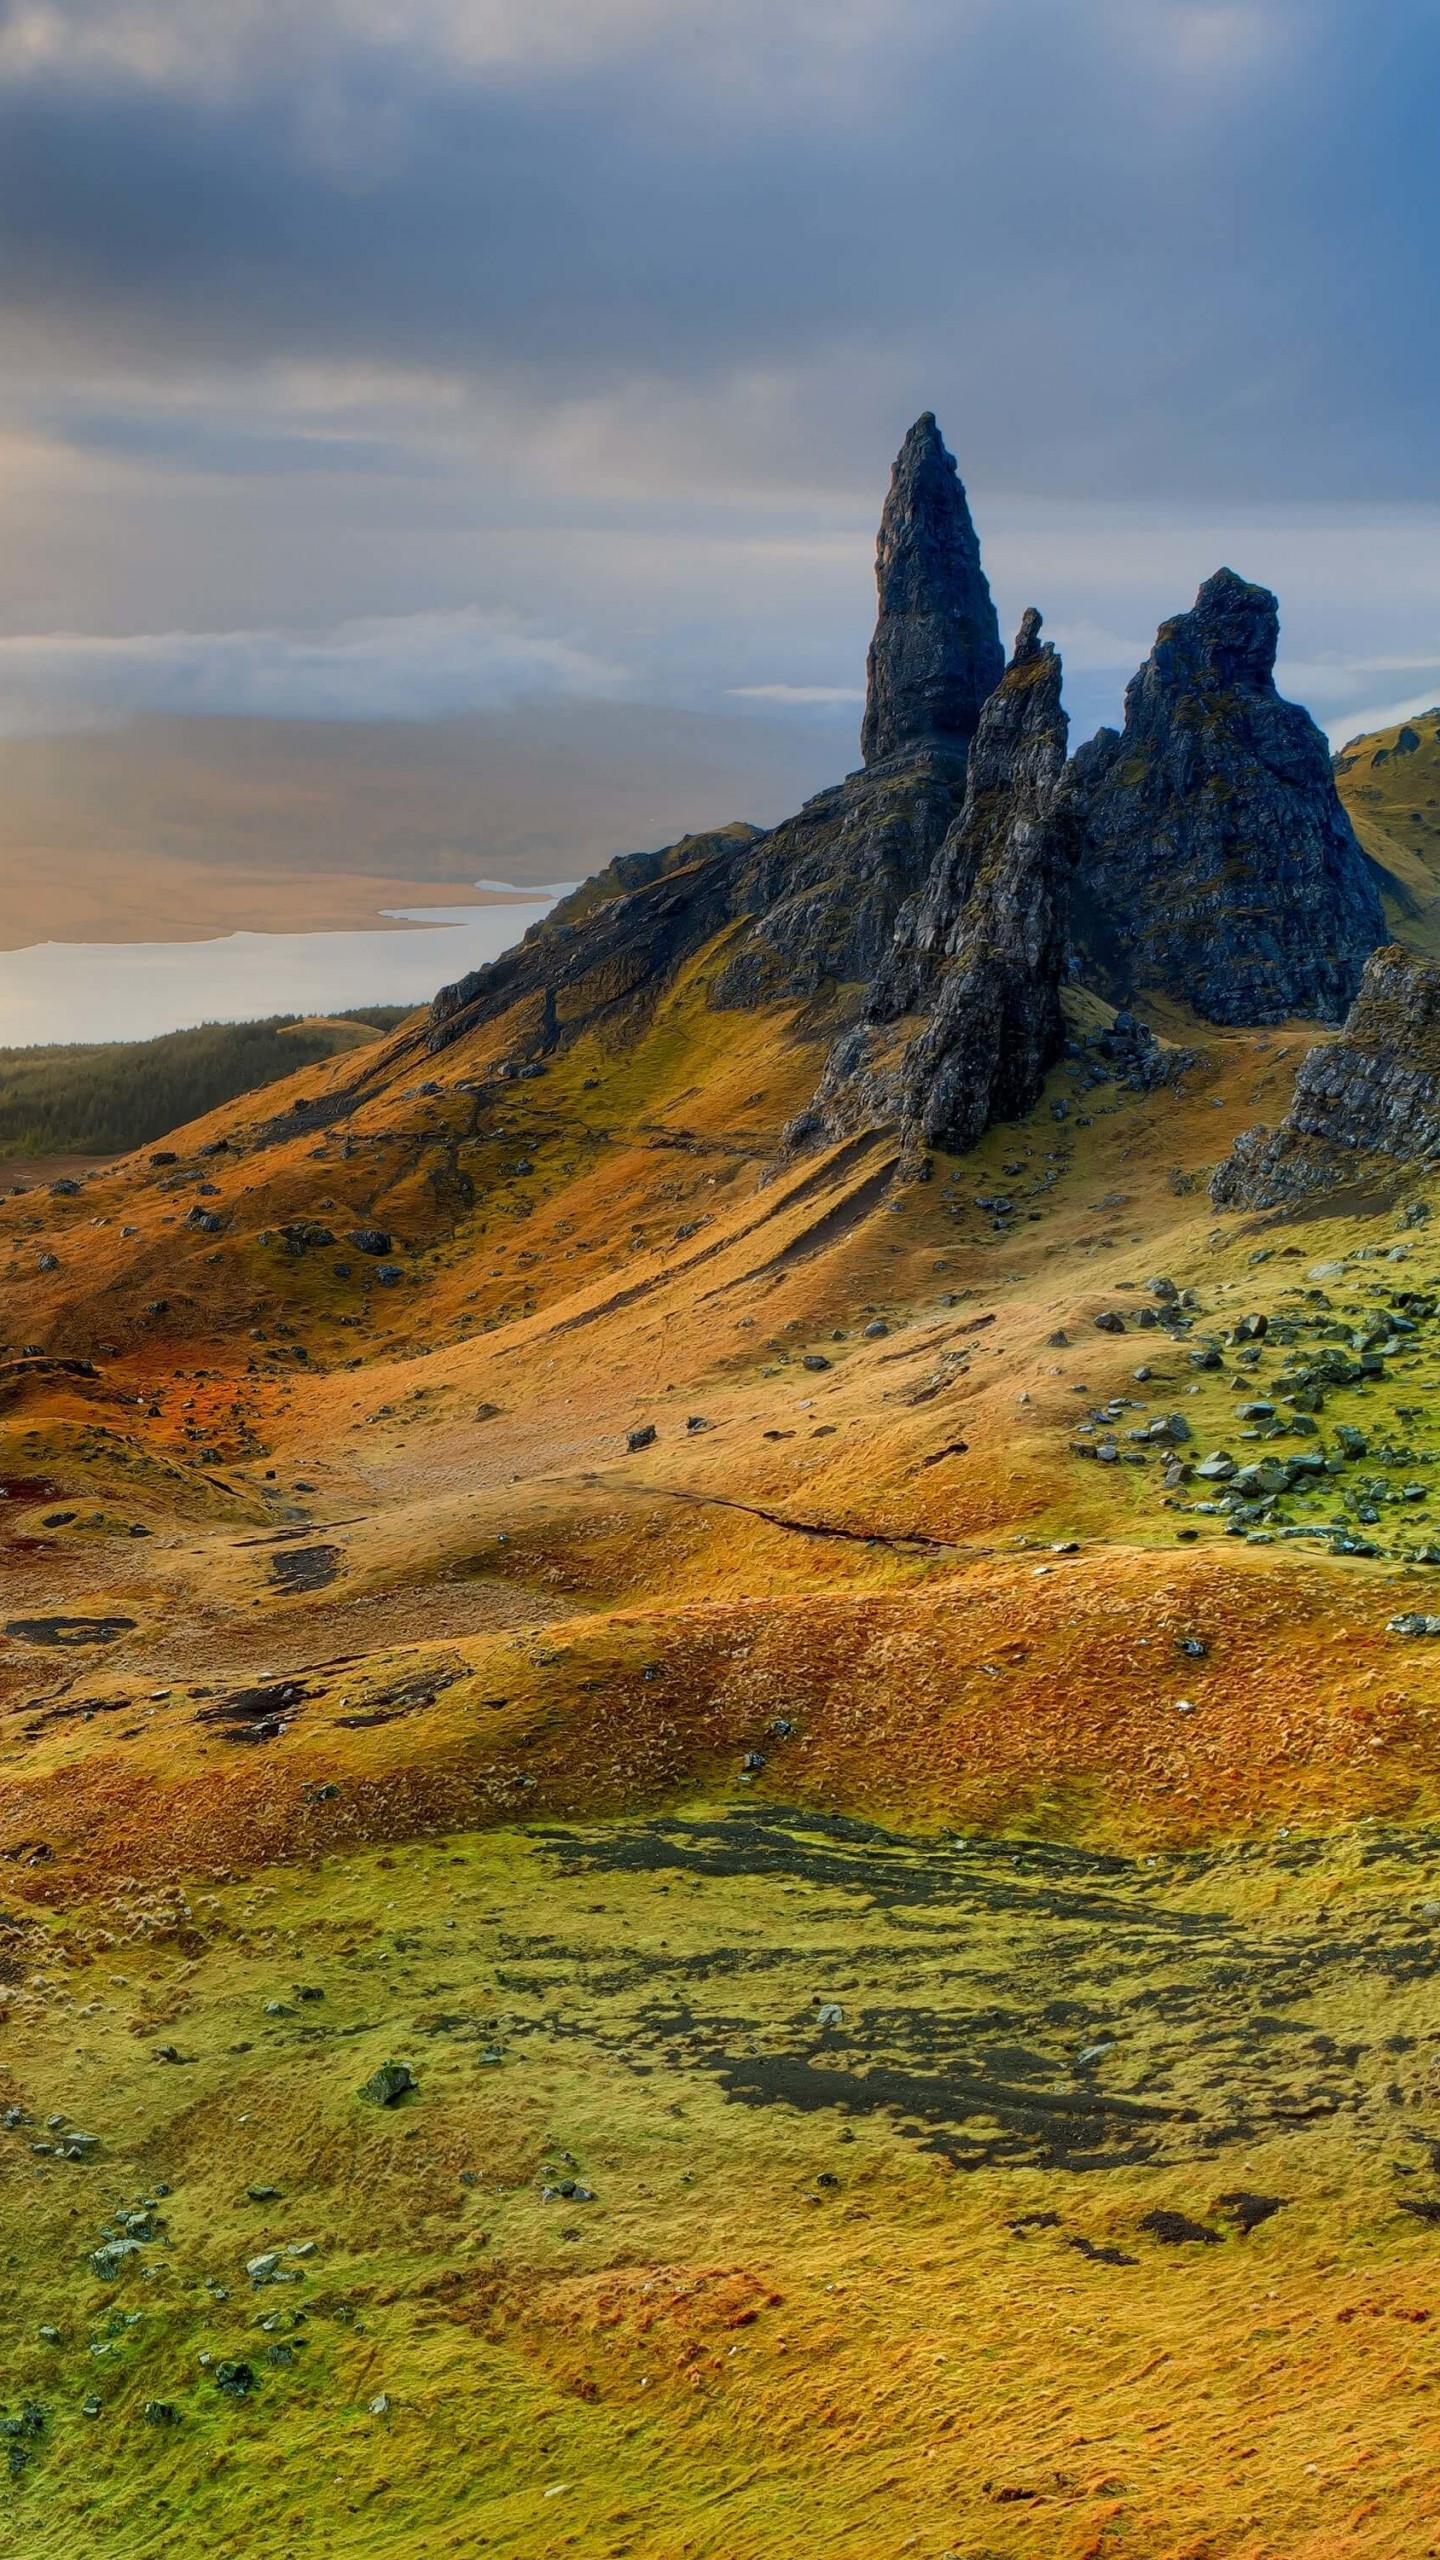 The Old Man of Storr, Isle of Skye, Scotland Wallpaper for SAMSUNG Galaxy S6